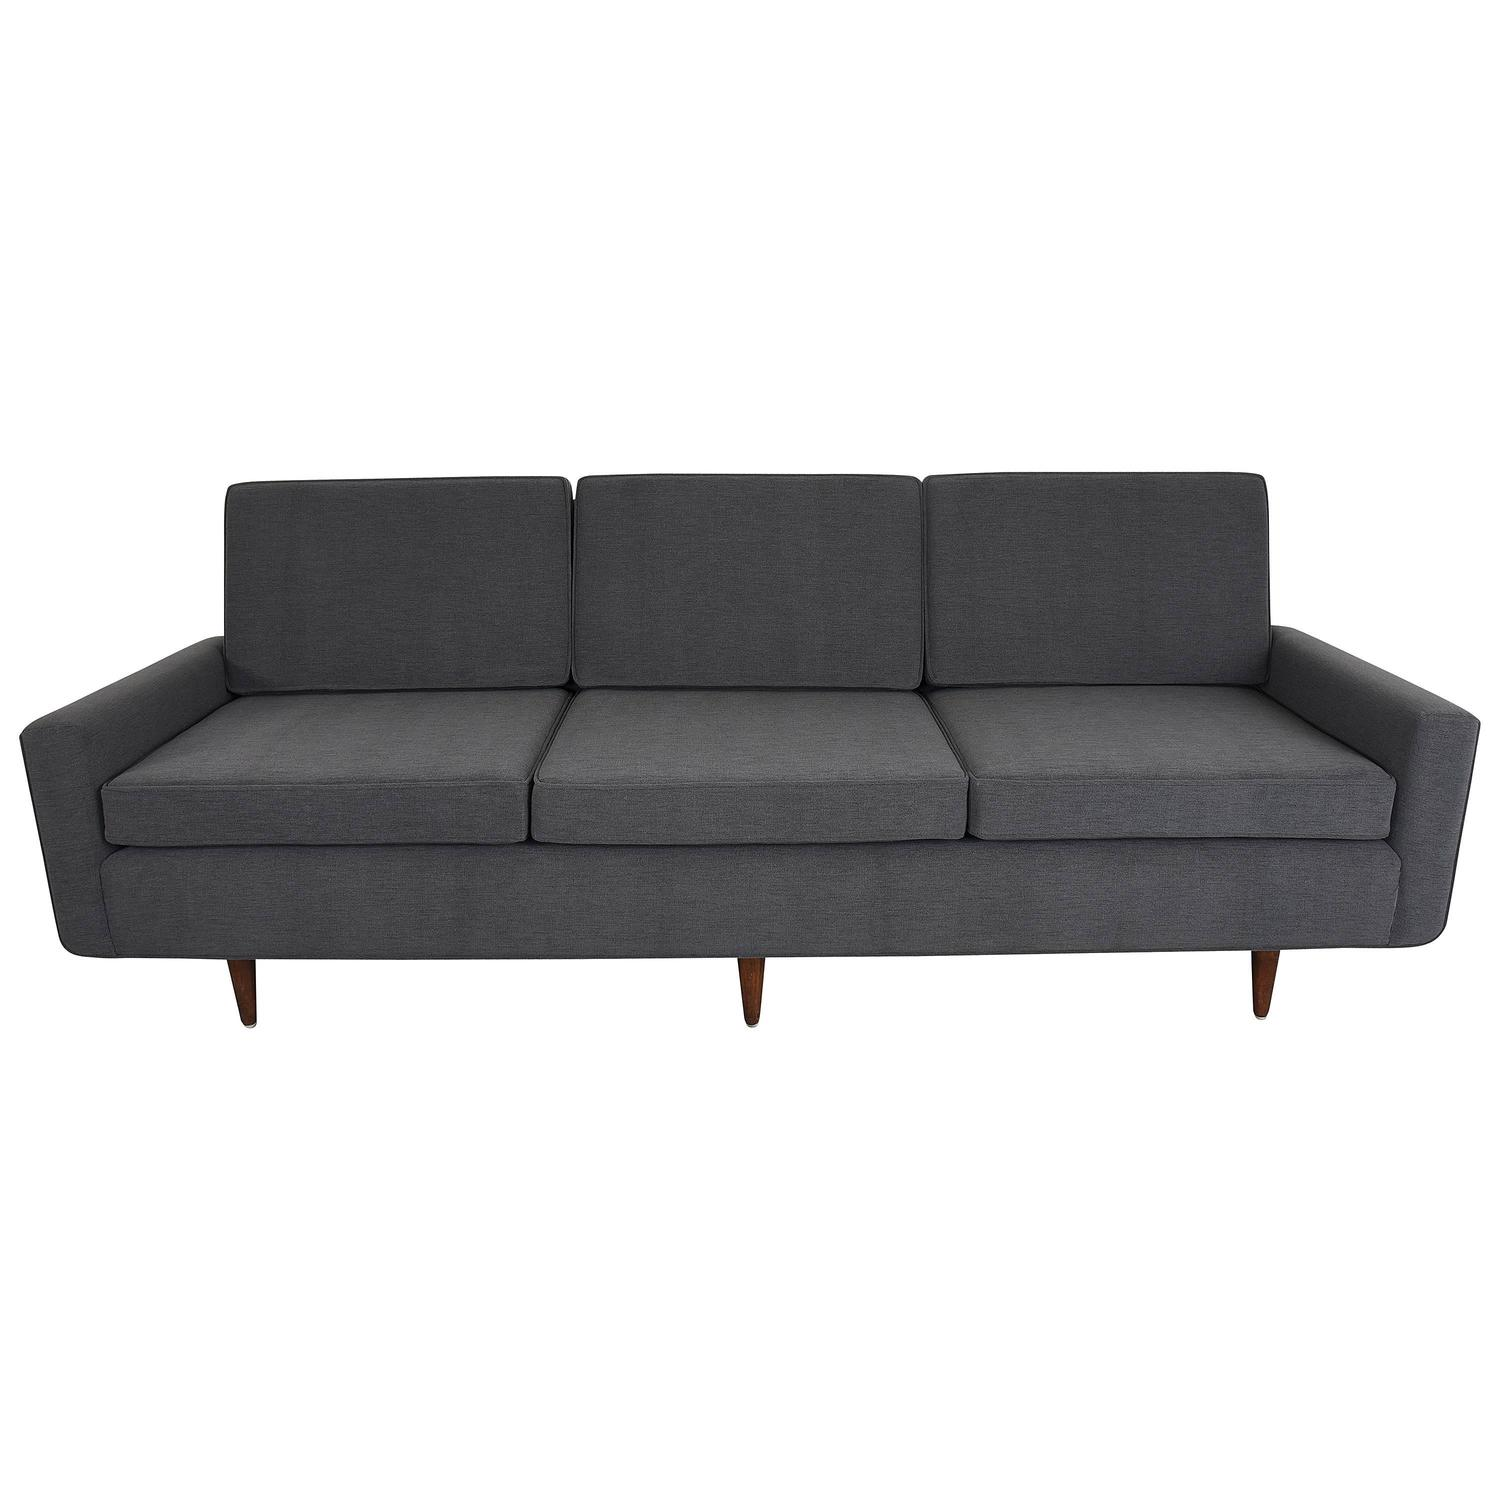 Ordinaire Florence Knoll Sofa, Model 2577 In Leather, 1955 For Sale At 1stdibs